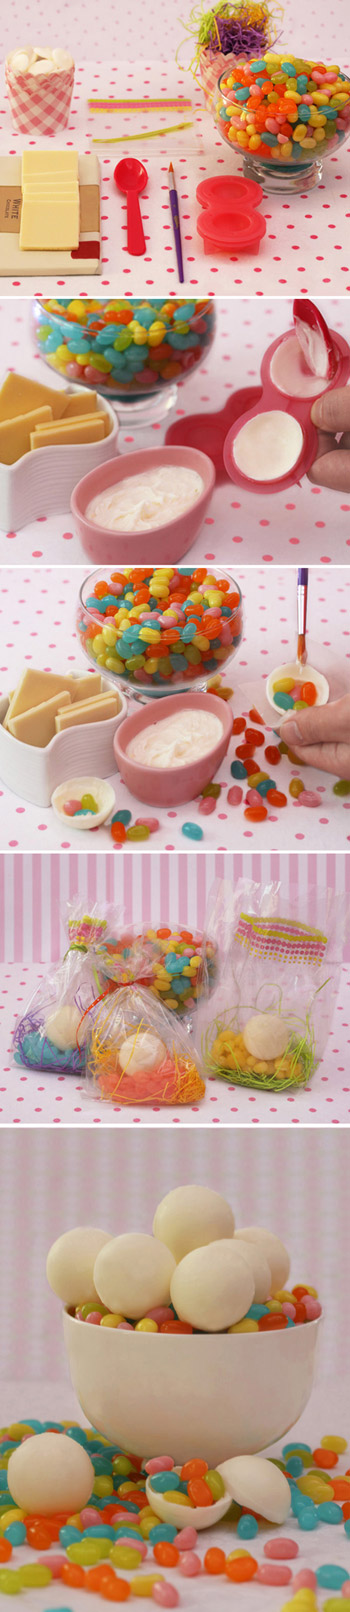 White Chocolate Jelly Belly Surprise Balls Tutorial